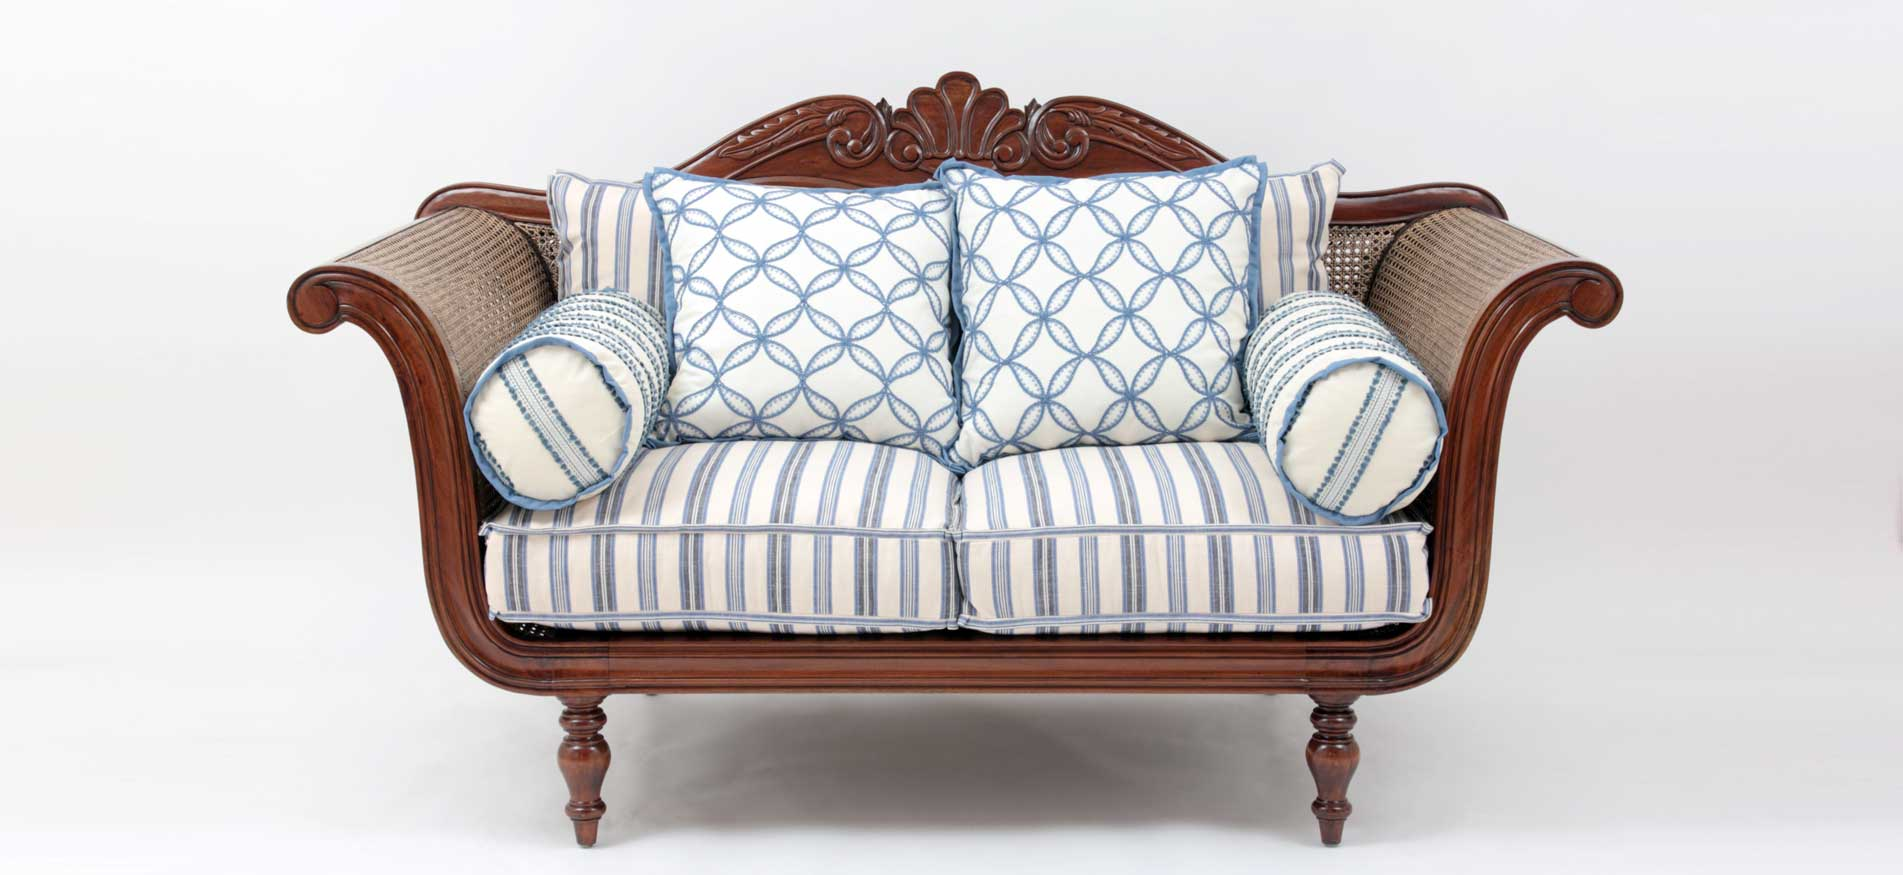 Antique reproductions are our passion.